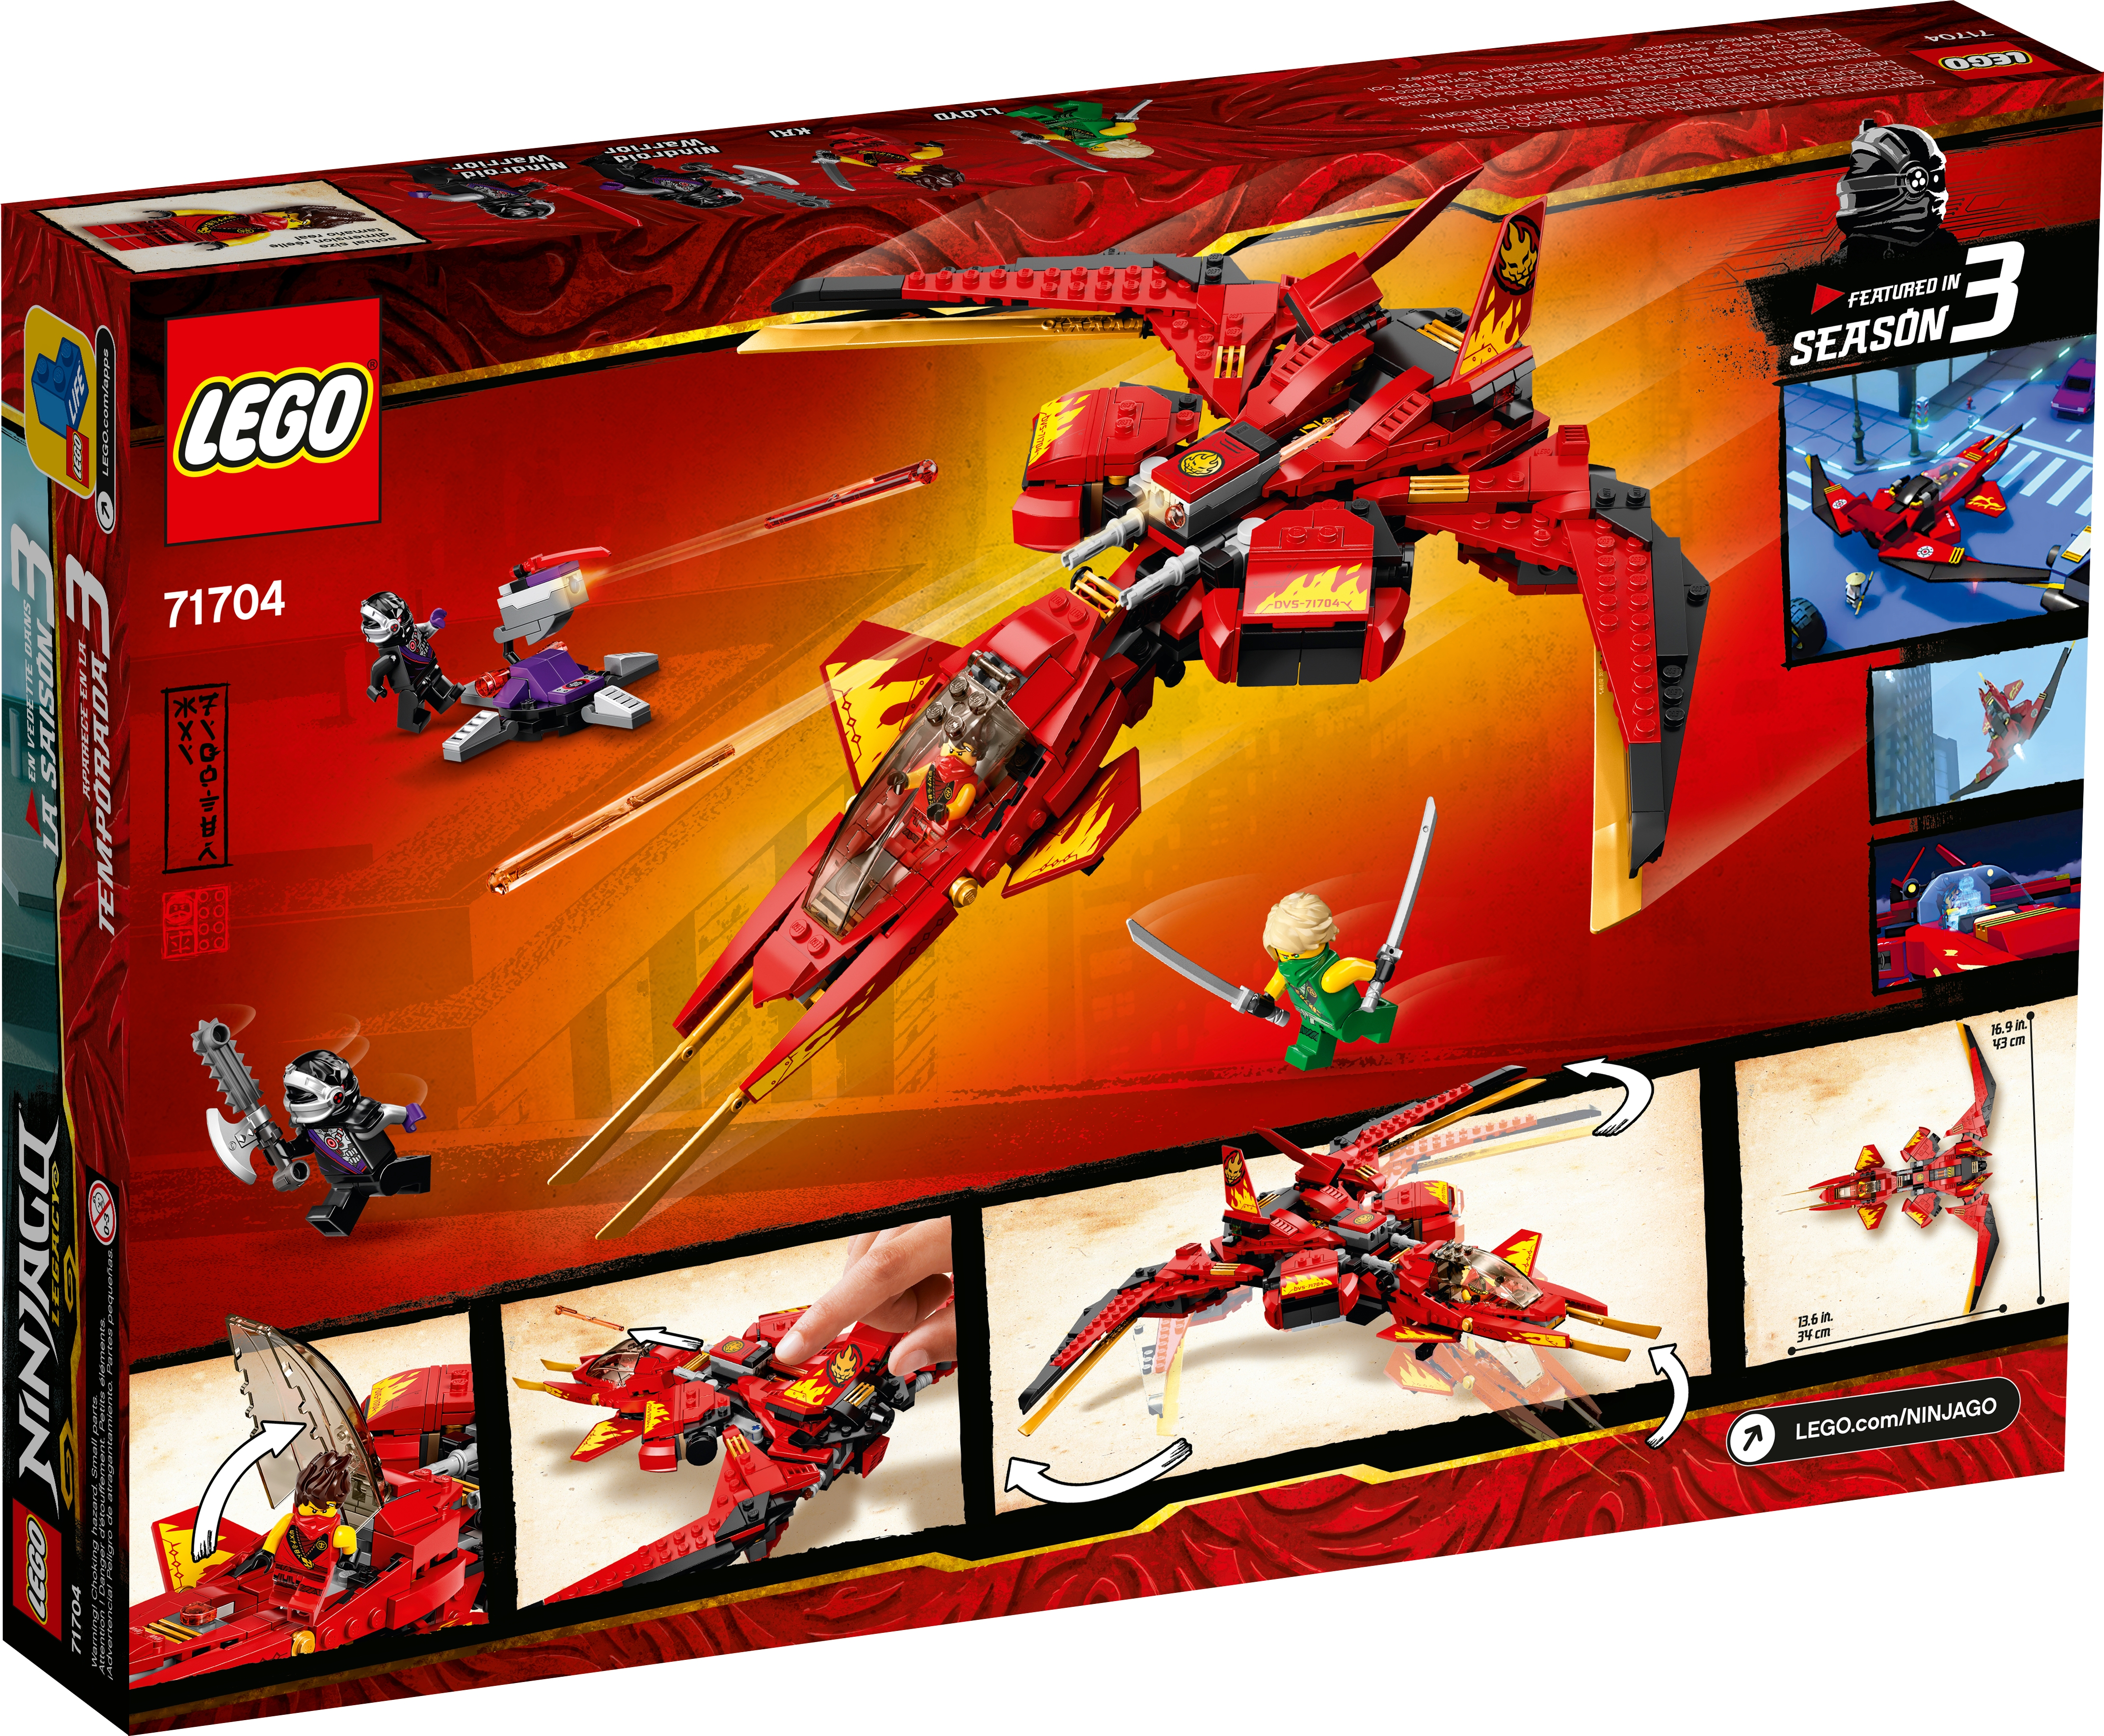 Kai Fighter 71704 Ninjago Buy Online At The Official Lego Shop Us